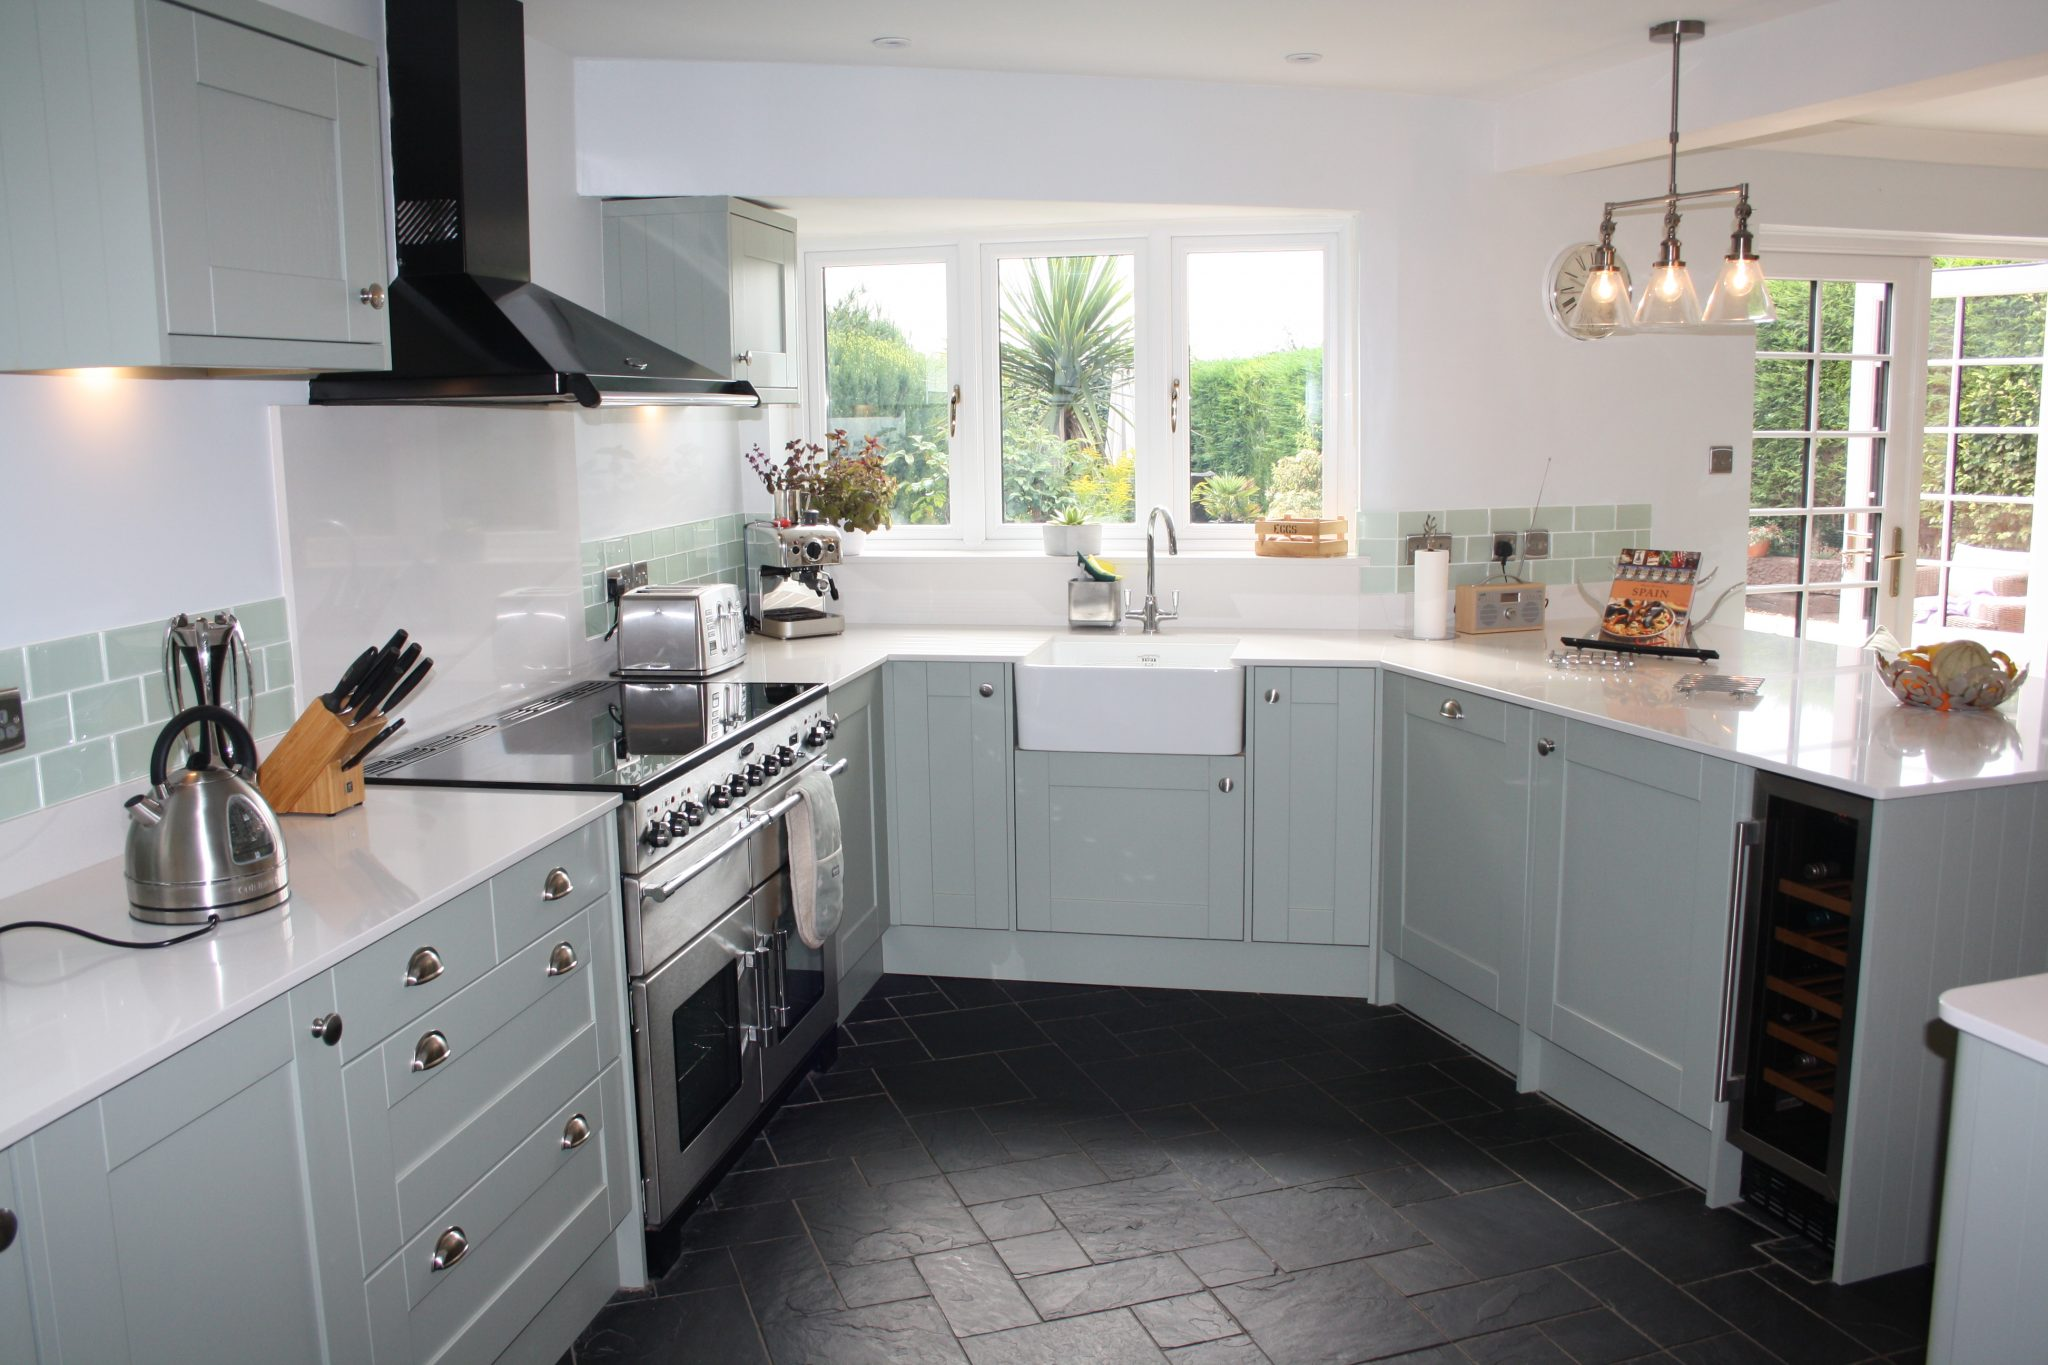 image of duck egg blue kitchen units with white work top, butler sink and dark stone tile floor